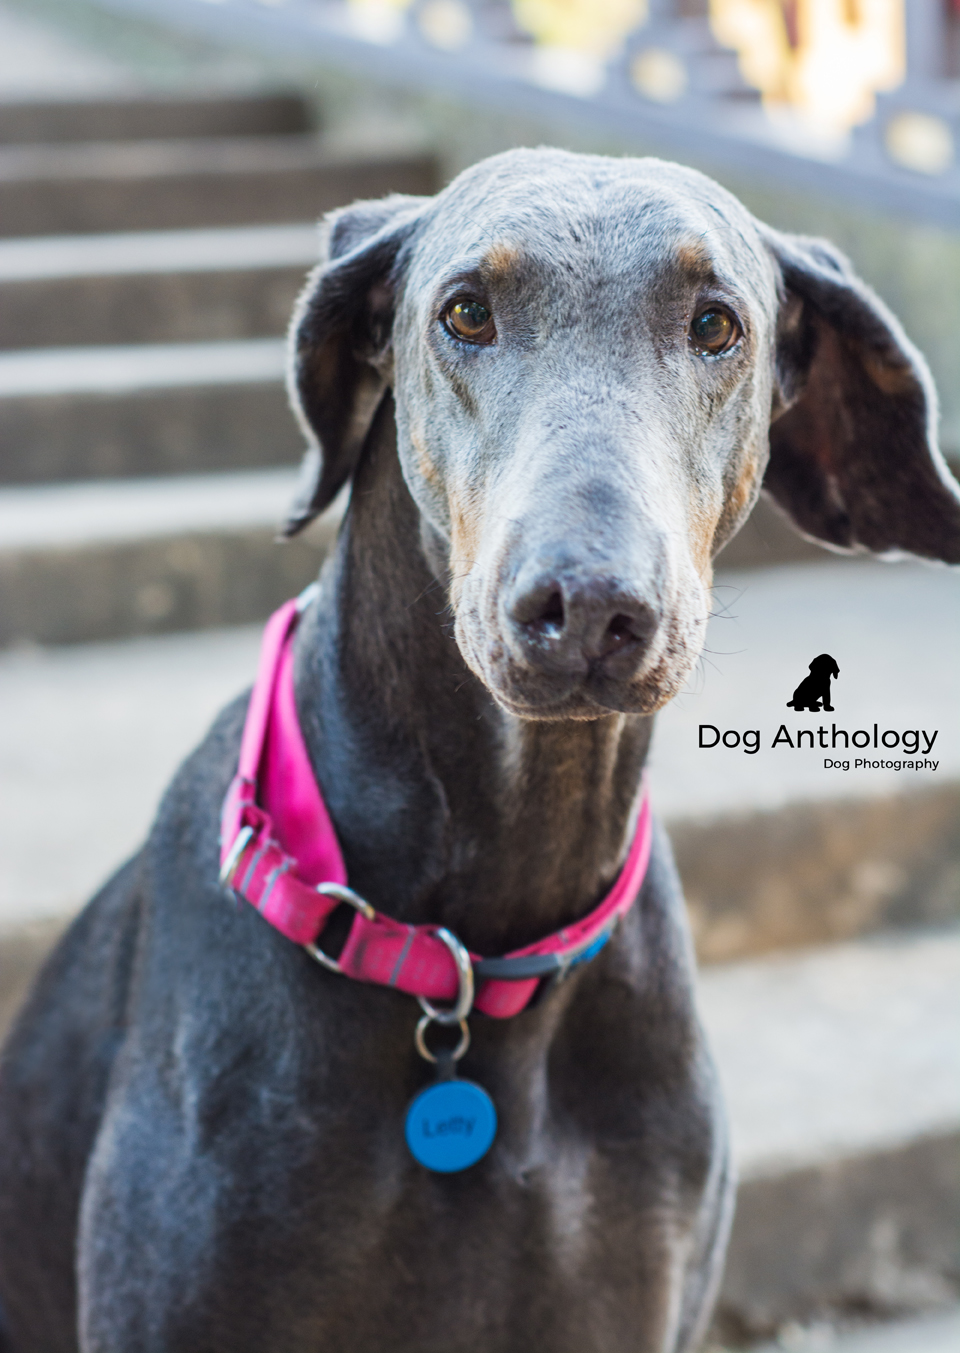 Look into those soulful eyes! Can't you just see her sweet personality shining through?